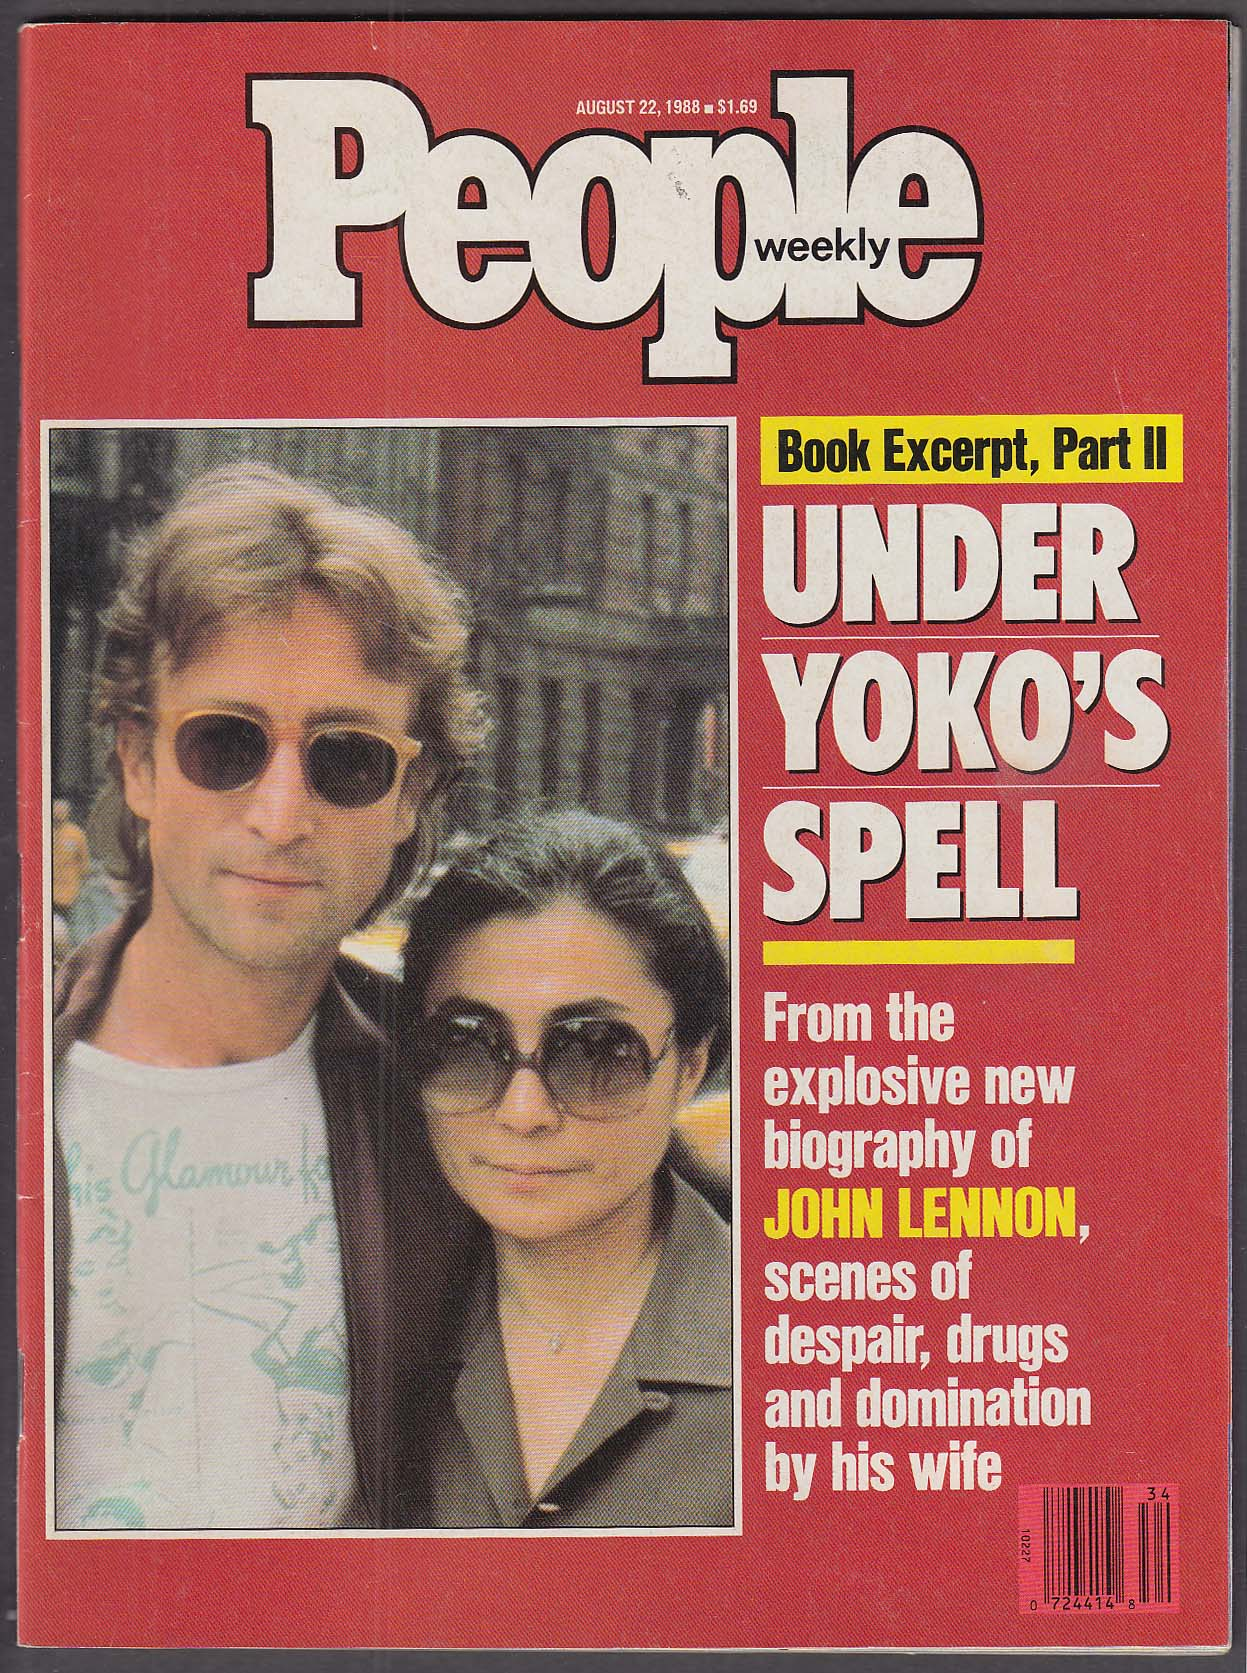 Image for PEOPLE John Lennon Yoko Ono 8/22 1988